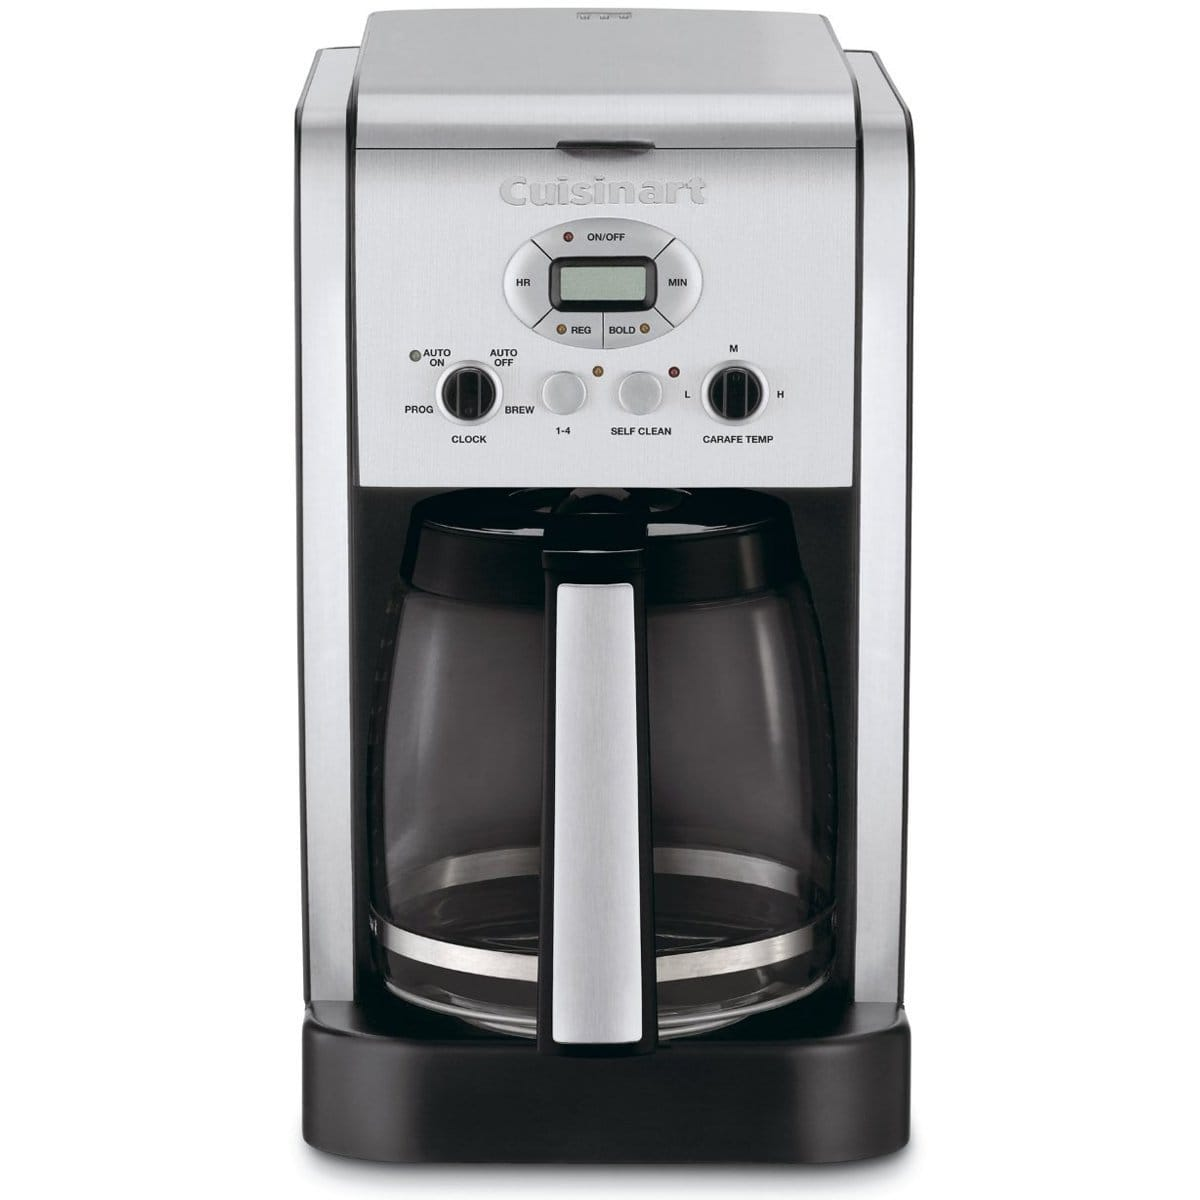 Cuisinart DCC-2600 Brew Central 14-Cup Coffeemaker (Manufacturer Refurbished) $40 + Free Shipping!